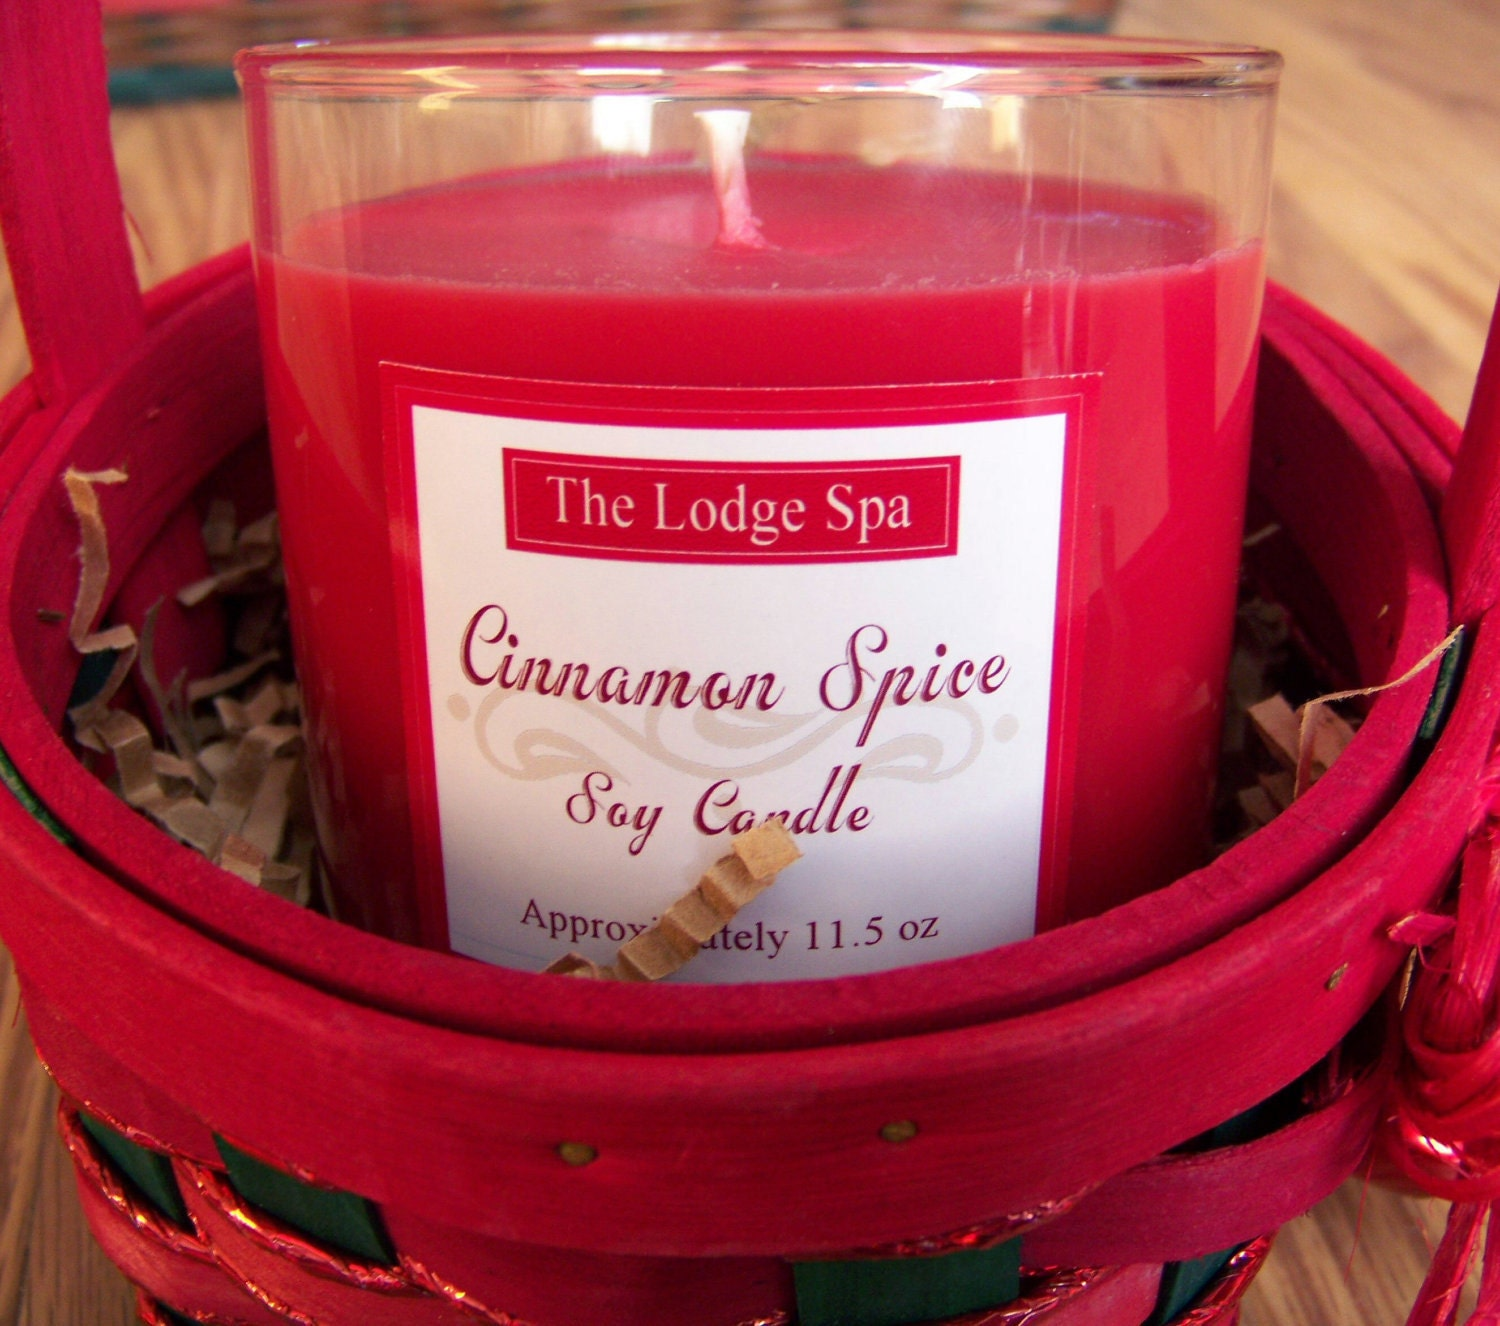 SALE - Soy Candle Gift Basket - Festive Red and Green with Bells- Choose Your Scent - 11.5 oz